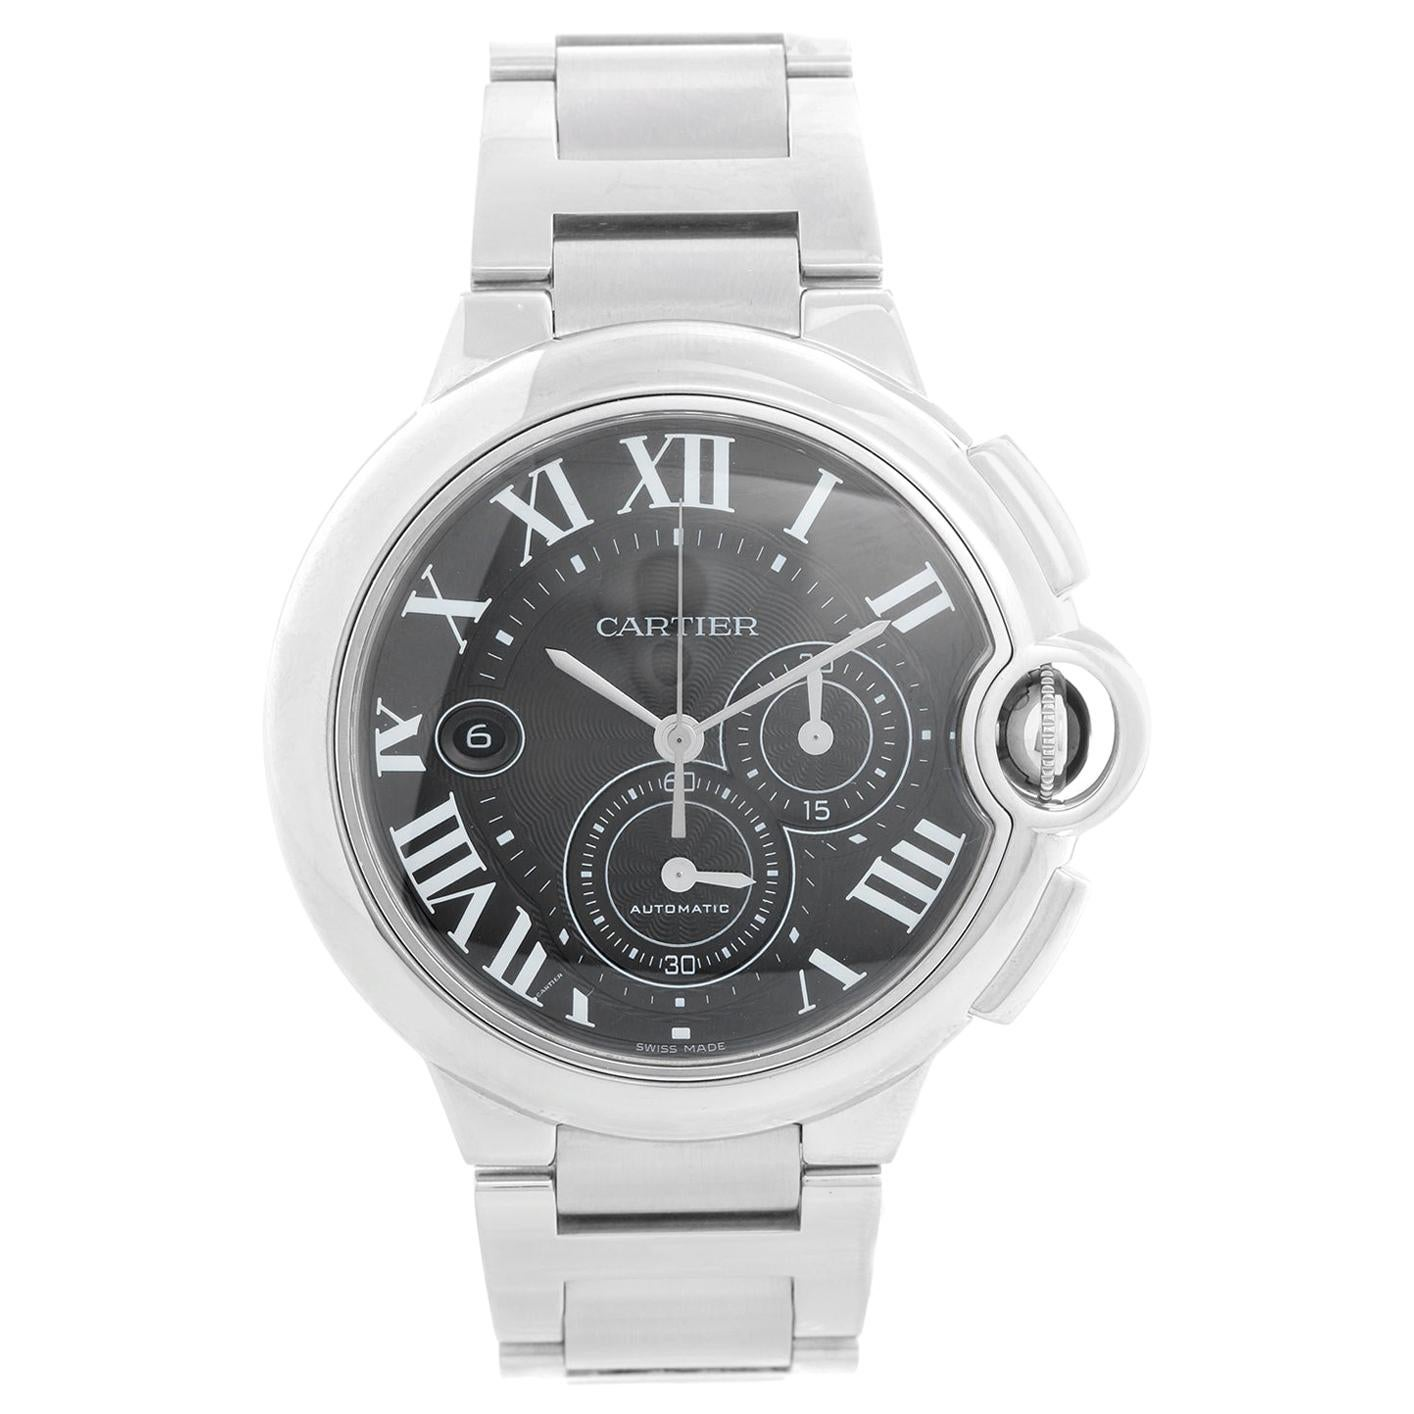 Cartier Ballon Bleu Stainless Steel Chronograph Automatic W6920076